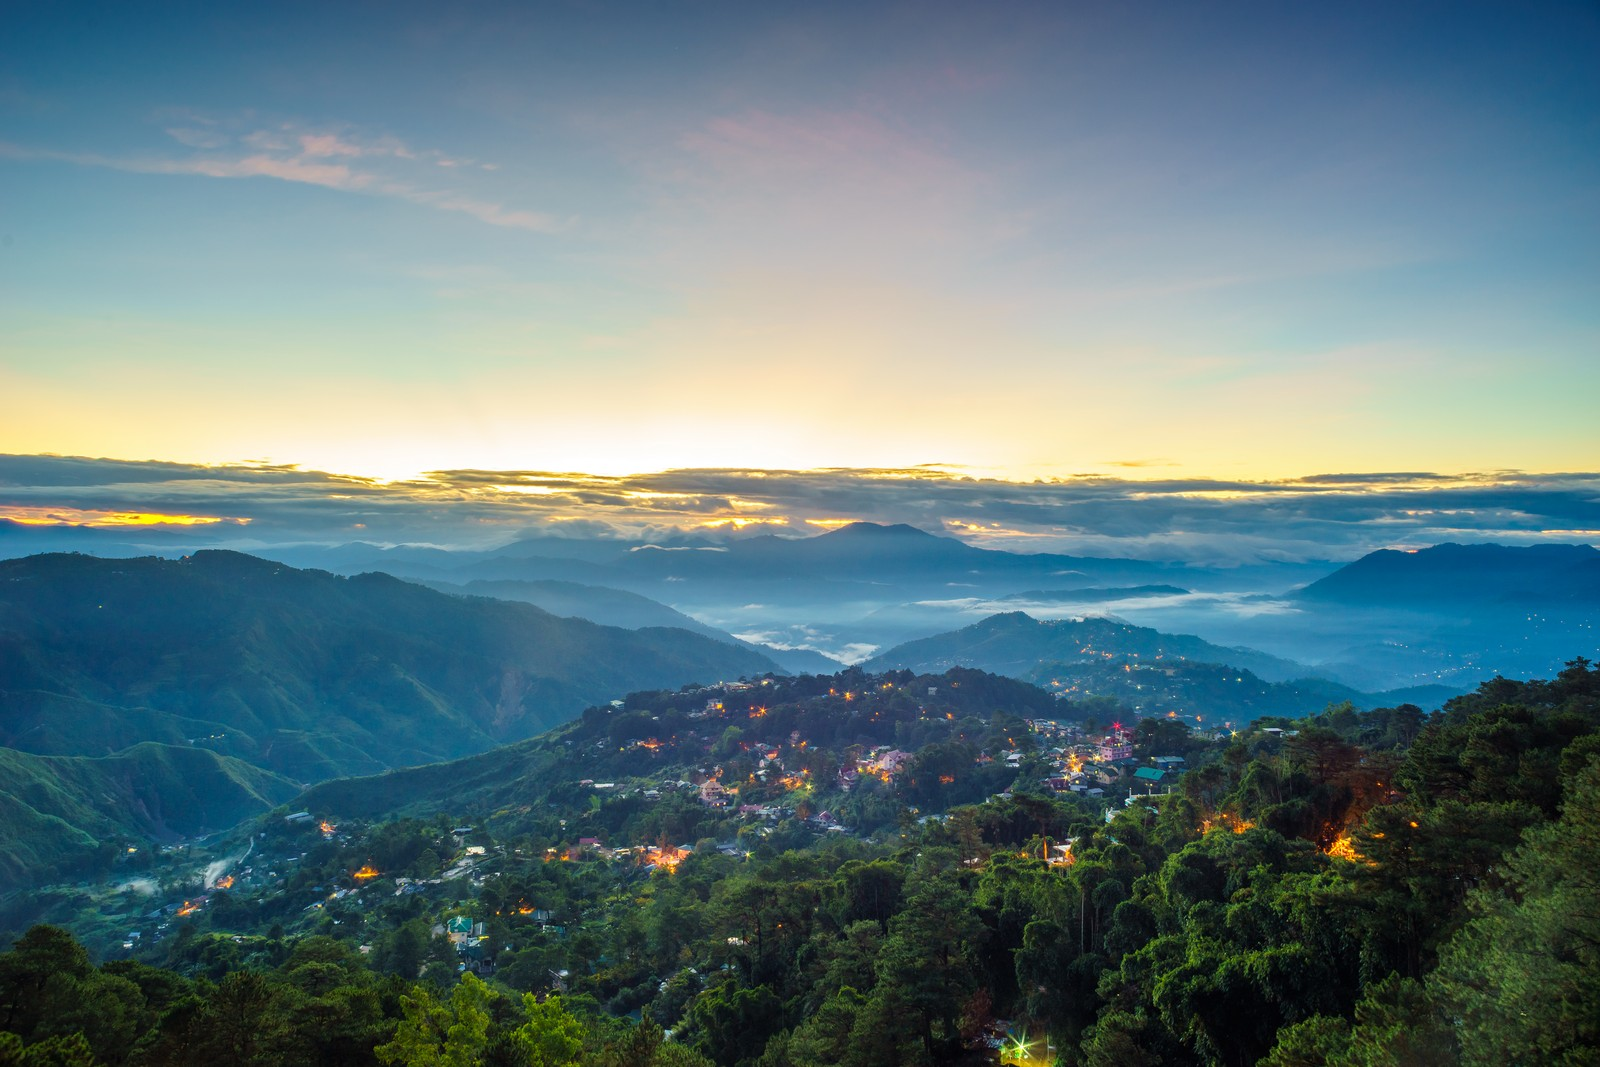 Amazing view of Baguio City during sunset from Mines View Park